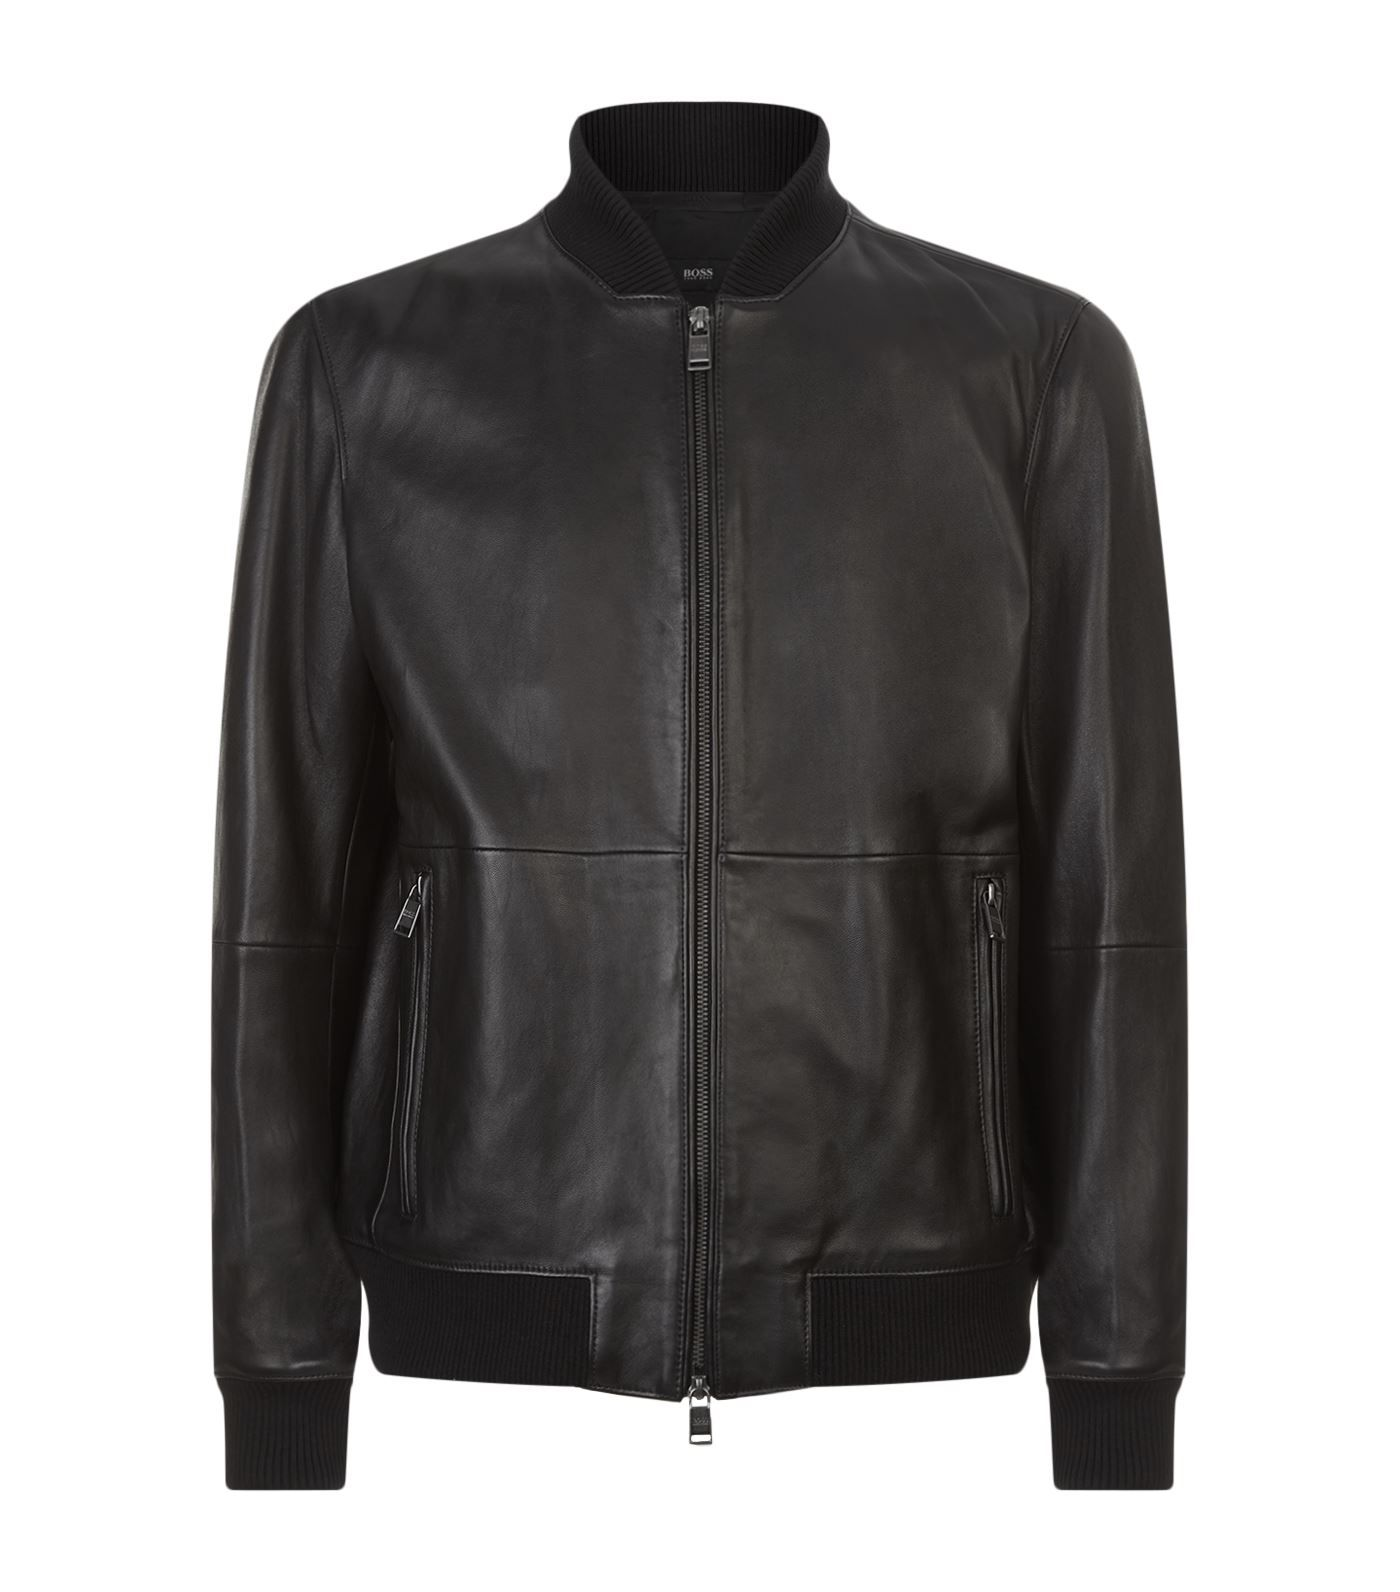 BOSS Leather Bomber Jacket in Black Erkek mont, Giyim, Mont